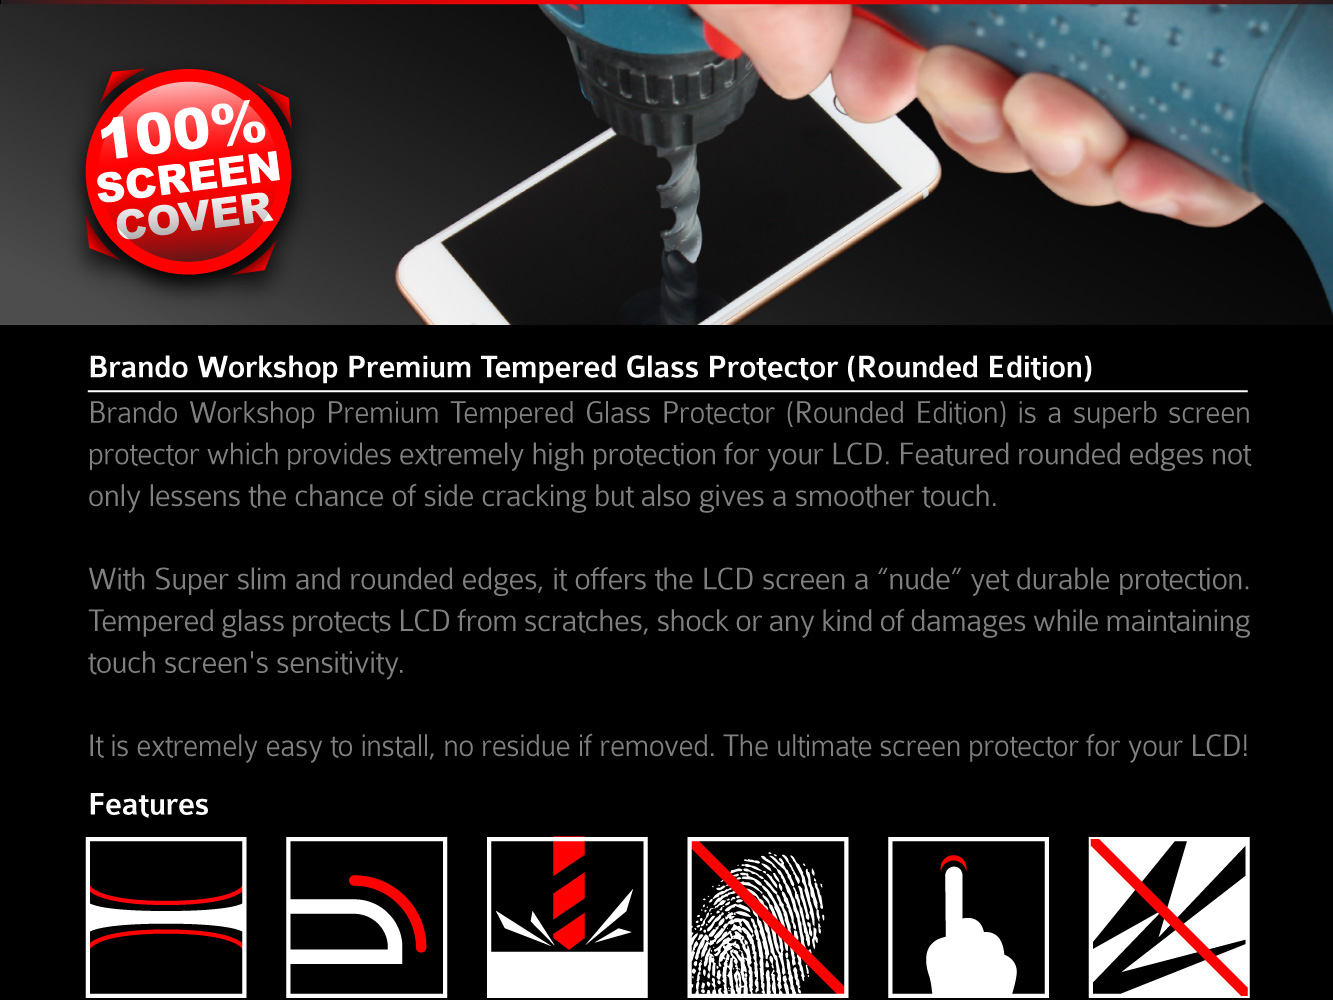 Brando Workshop Full Screen Coverage Glass Protector (Samsung Galaxy Note5) - Black